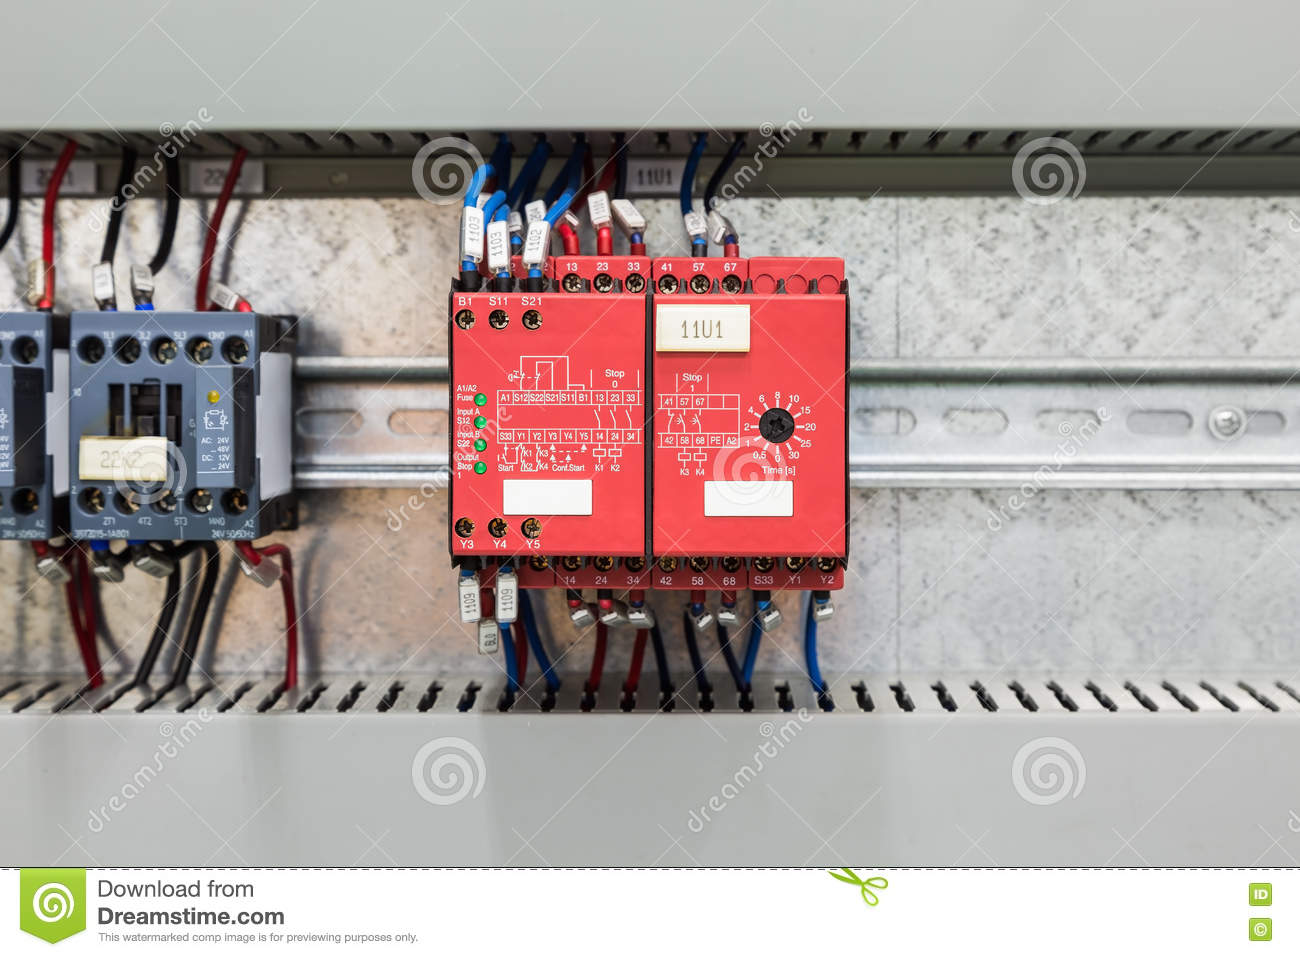 4 Pole Solid State Relay Wiring Diagram in addition Safety Relay Wiring For Emergency Stop Circuit together with Electrical Diagram Reversing Diagram 12 Vdc also Octal Relay Wiring Diagram besides Ac Dpdt Relay Wiring Diagram Ladder. on omron safety relay wiring diagram